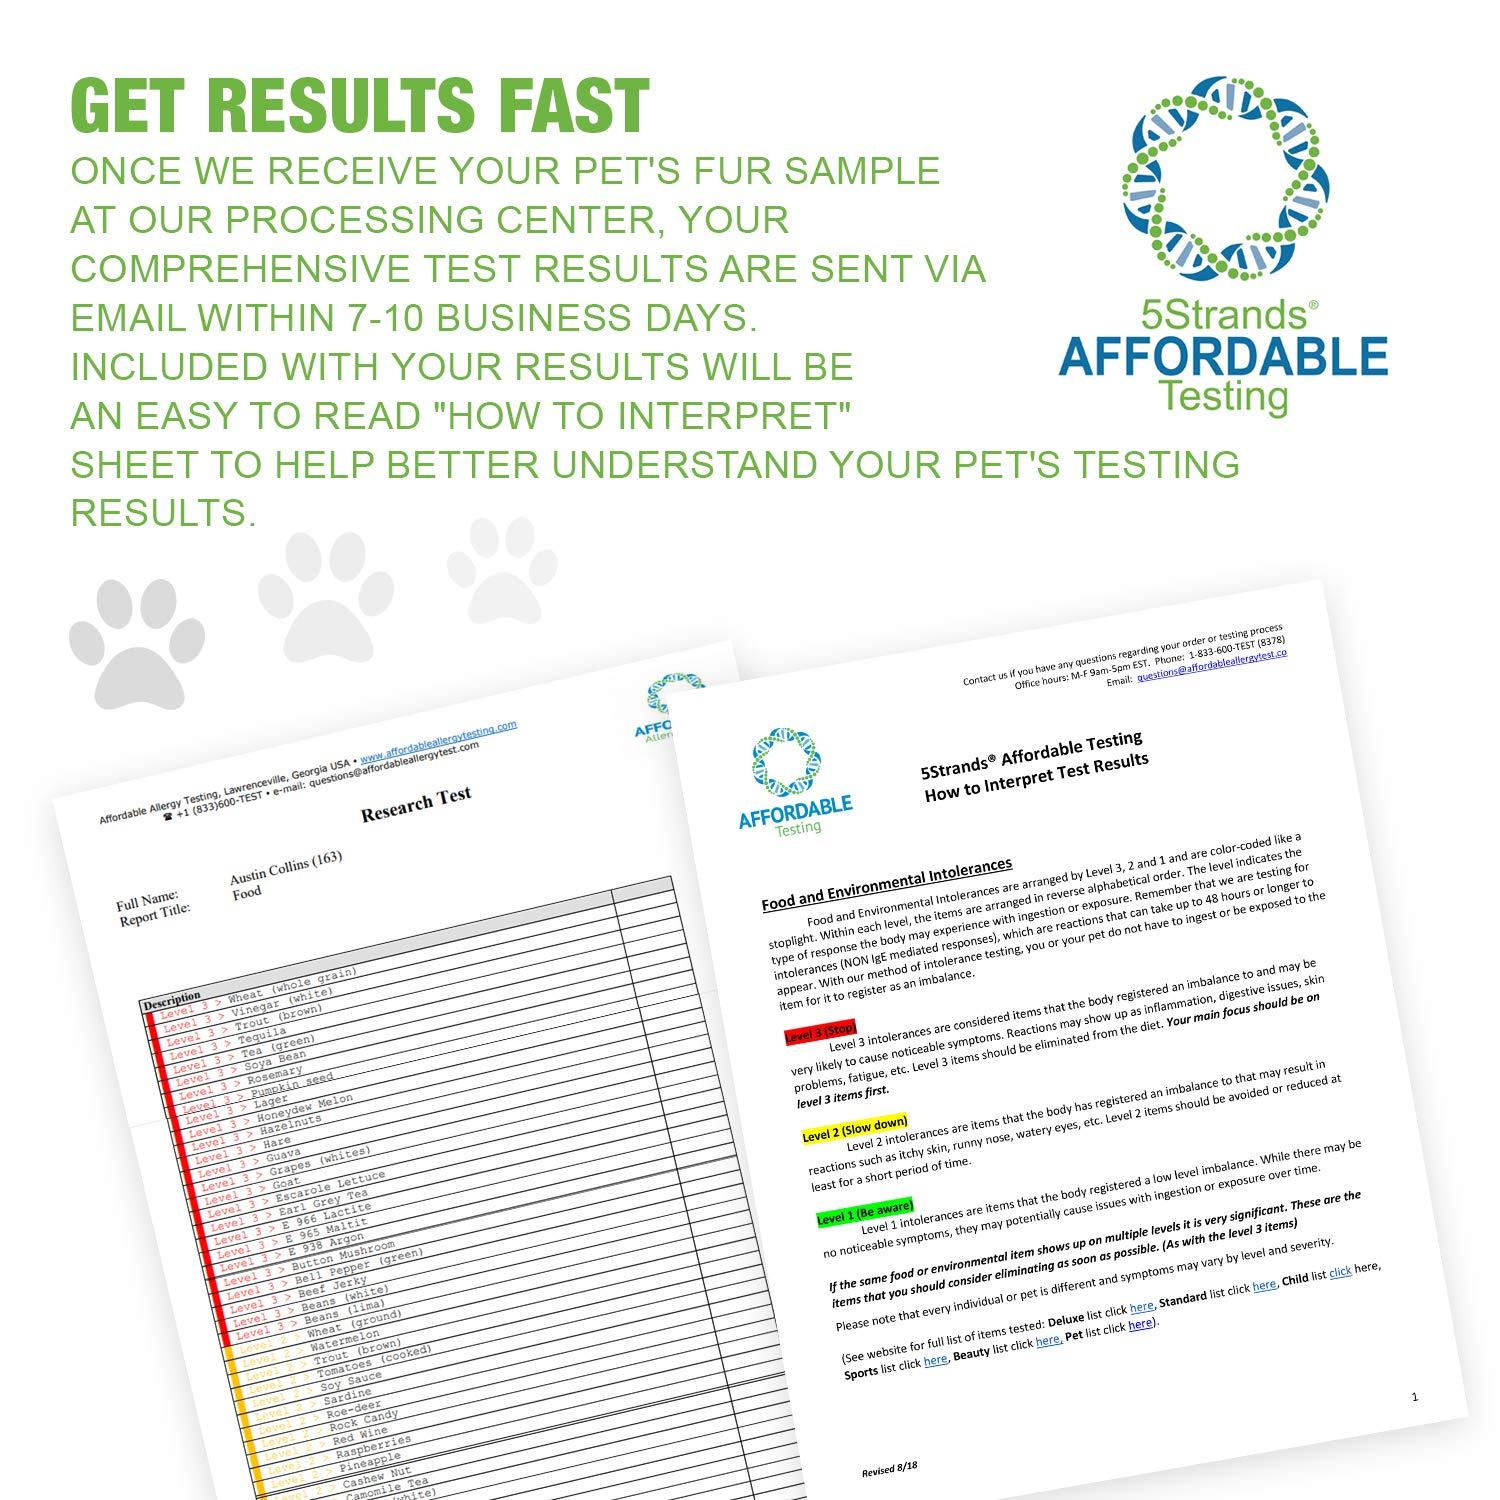 5Strands | Affordable Pet Test | 200 Food Ingredients & 100 Environmental Items Tested Cat & Dog | Allergy Sensitivity & Intolerance at Home Collection Test Kit | Hair Analysis | (Pet 300) by 5Strands (Image #7)